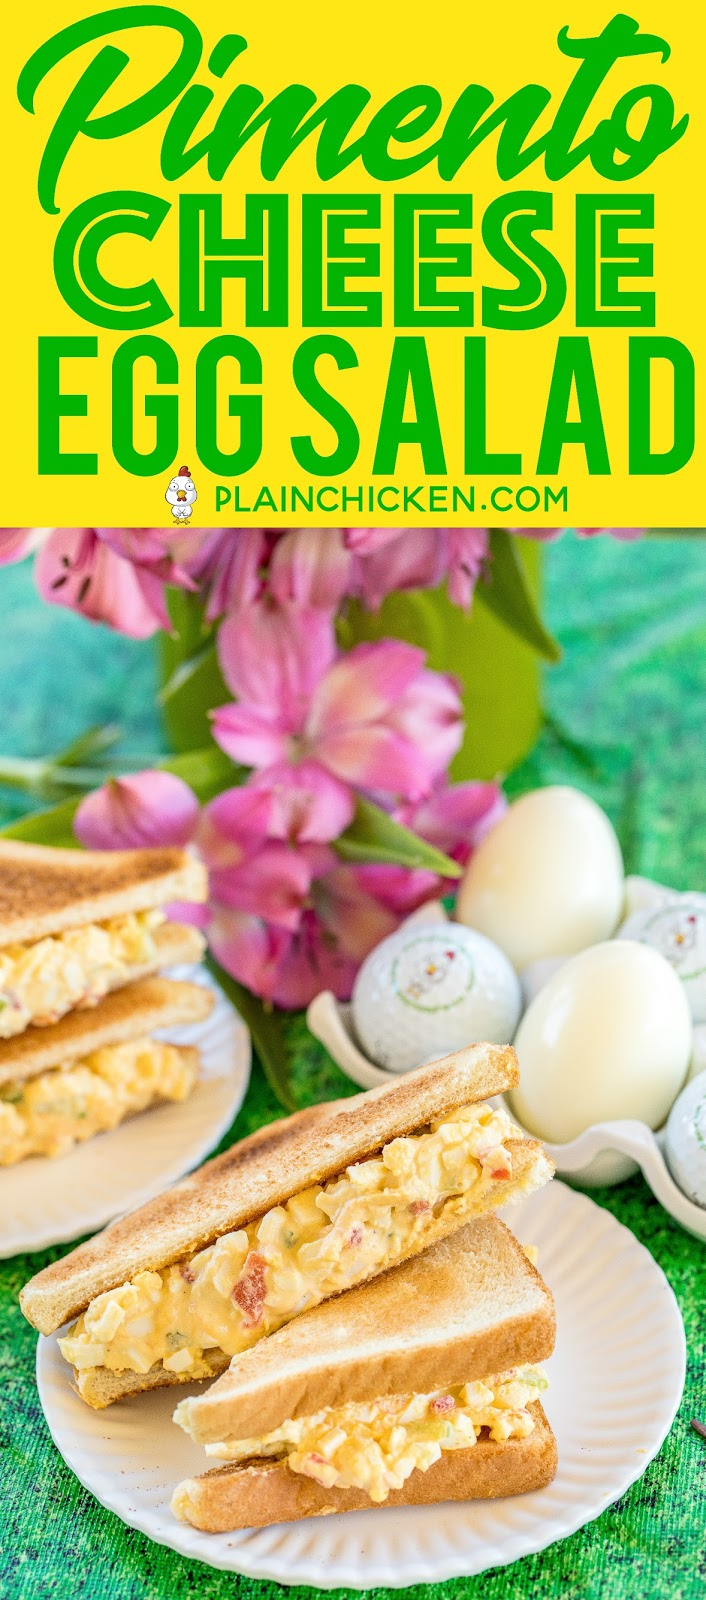 The Masters Pimento Cheese Egg Salad - the best of both worlds! Can't decide which Masters sandwich is your favorite? Combine them both into one! Seriously DELICIOUS!! Hard boiled eggs, mayonnaise, vinegar, celery, onion powder, Worcestershire sauce, cheese, pimentos. This stuff never lasts long in our house! #themasters #masters #eggsalad #pimentocheese #sandwich #hardboiledeggs